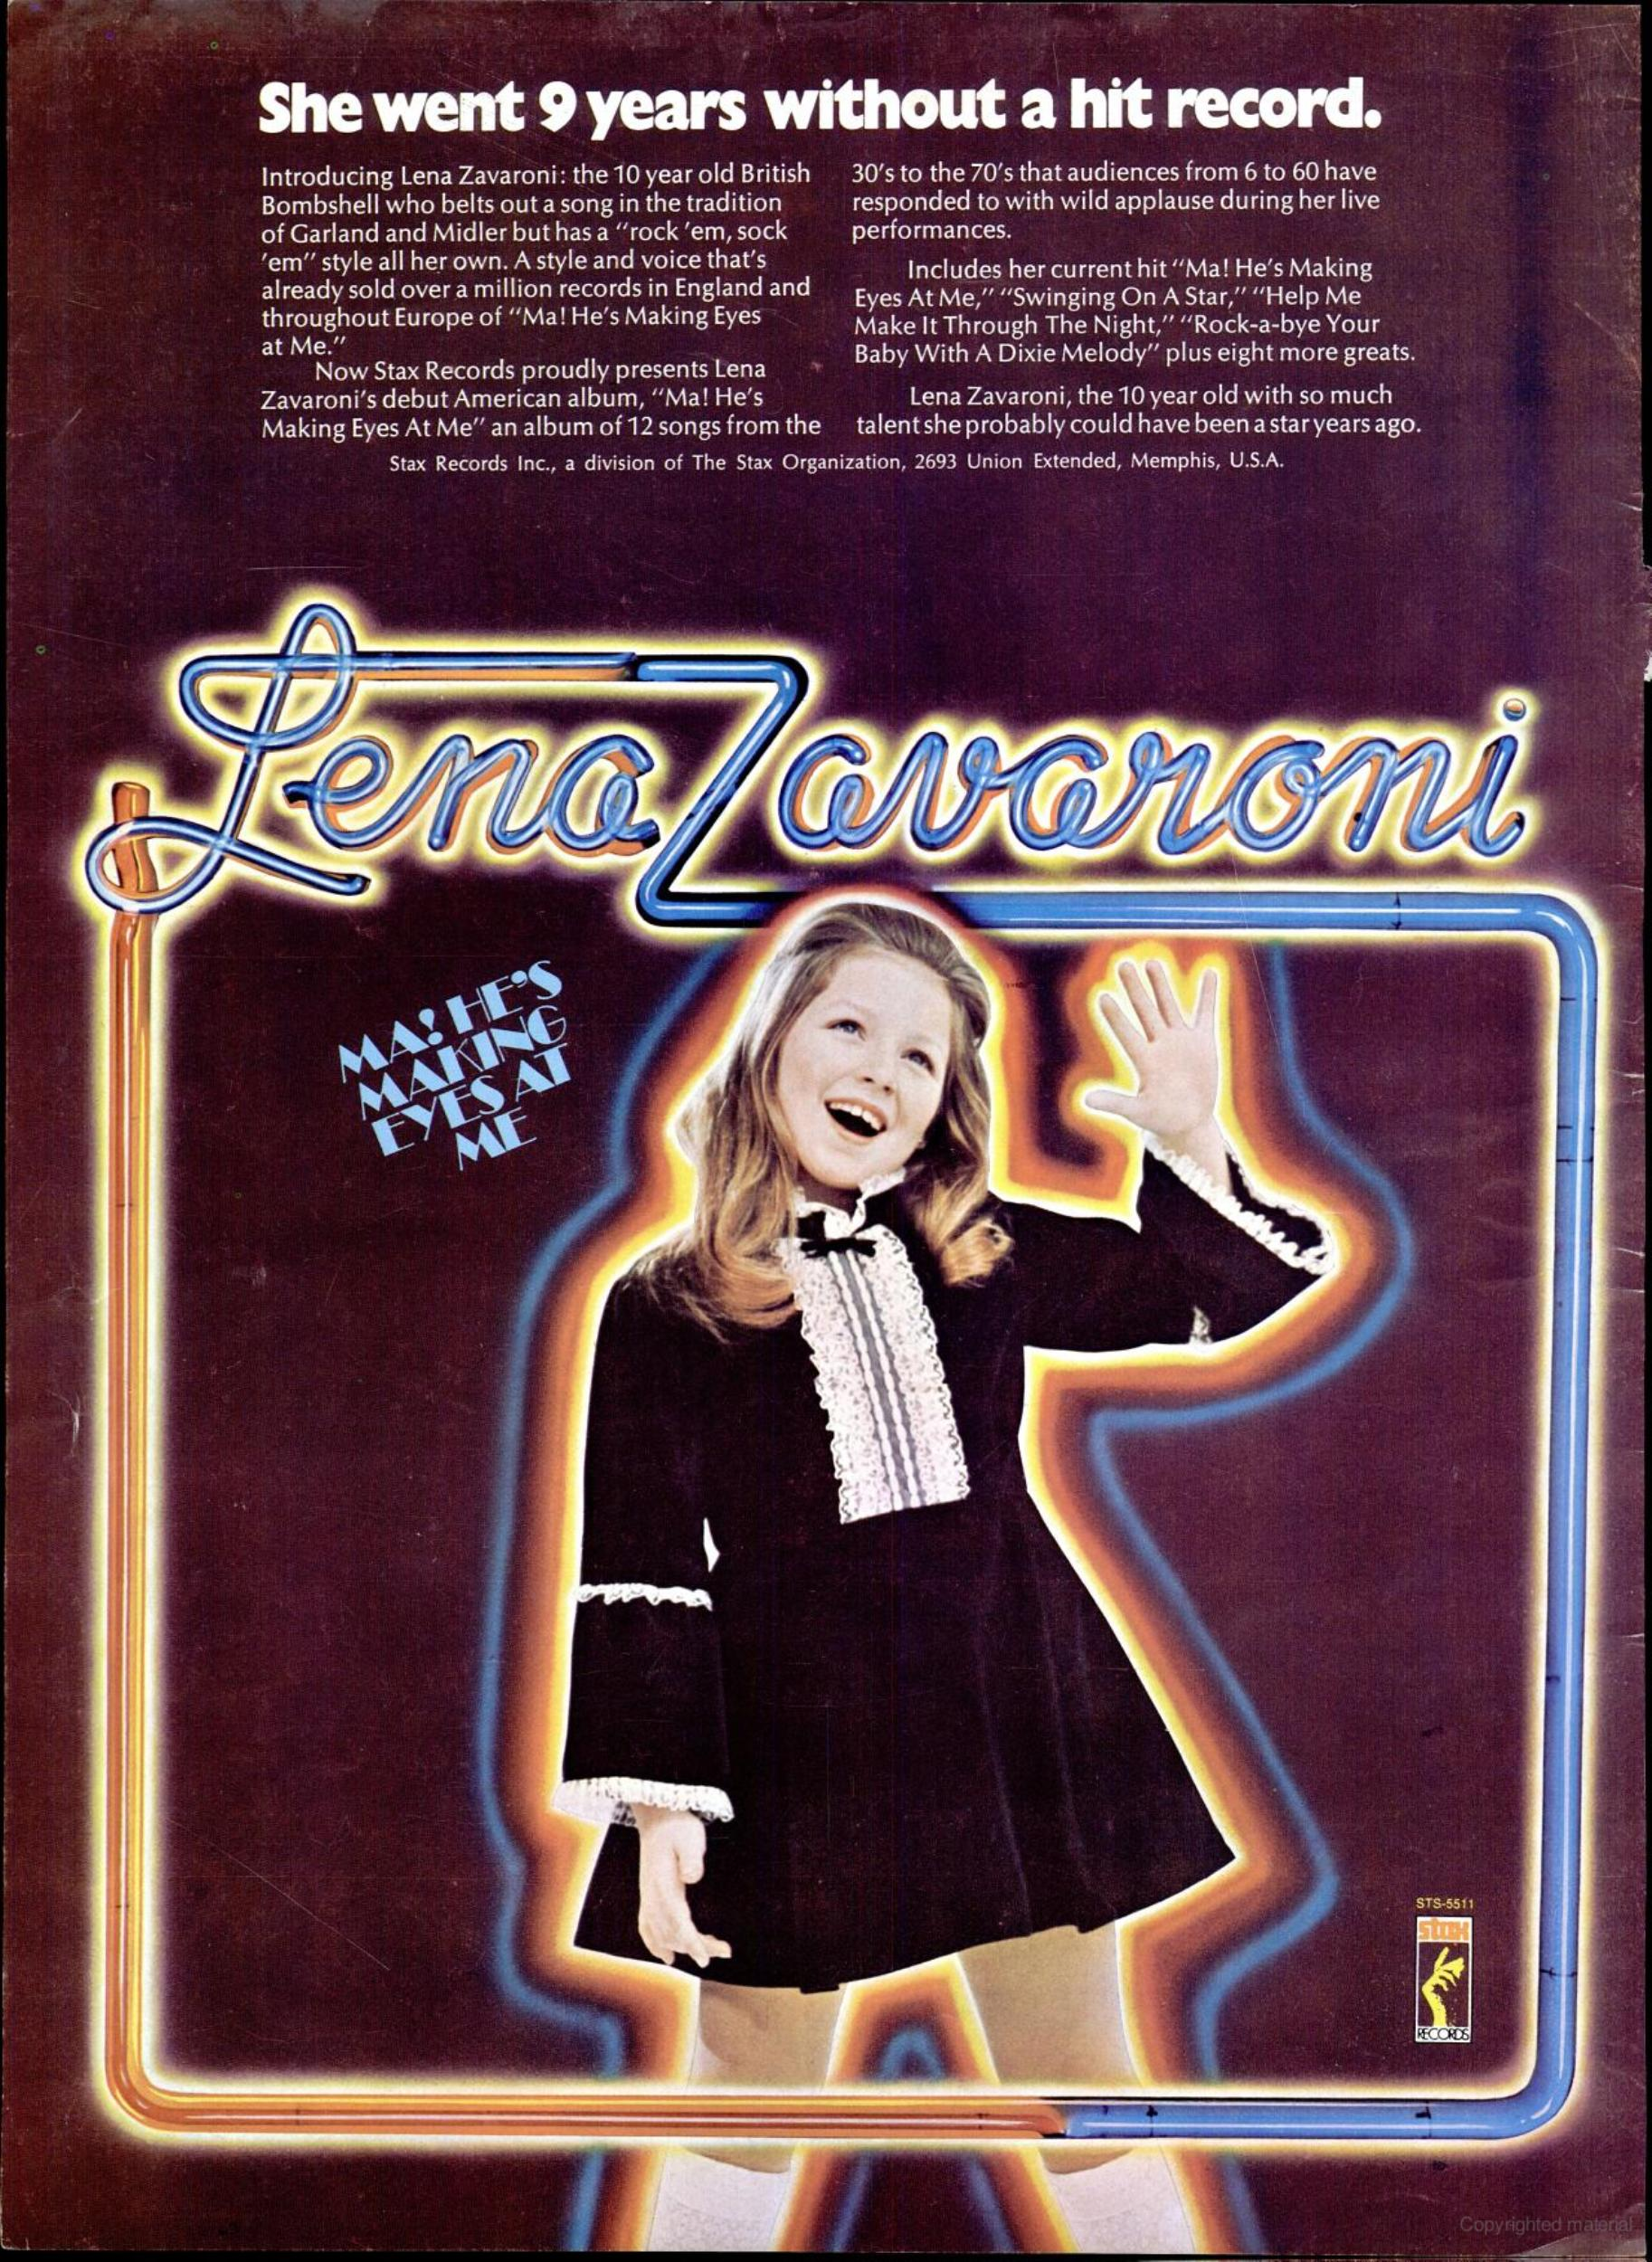 full page advert for the Stax release of Lena Zavaroni's LP Ma! He's Making Eyes at me